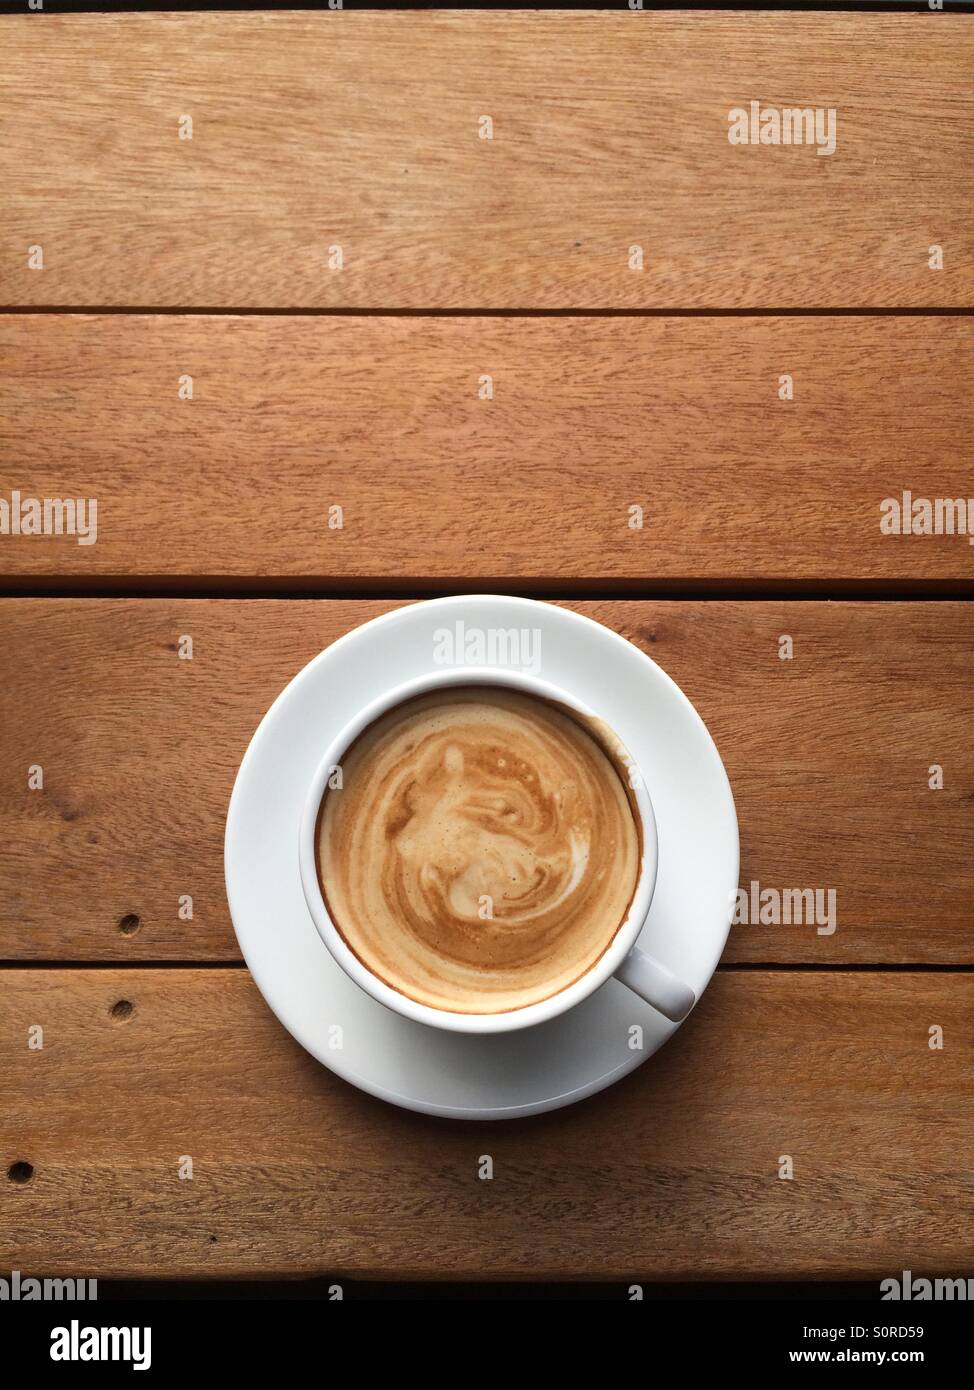 Hot latte cup of coffee. - Stock Image